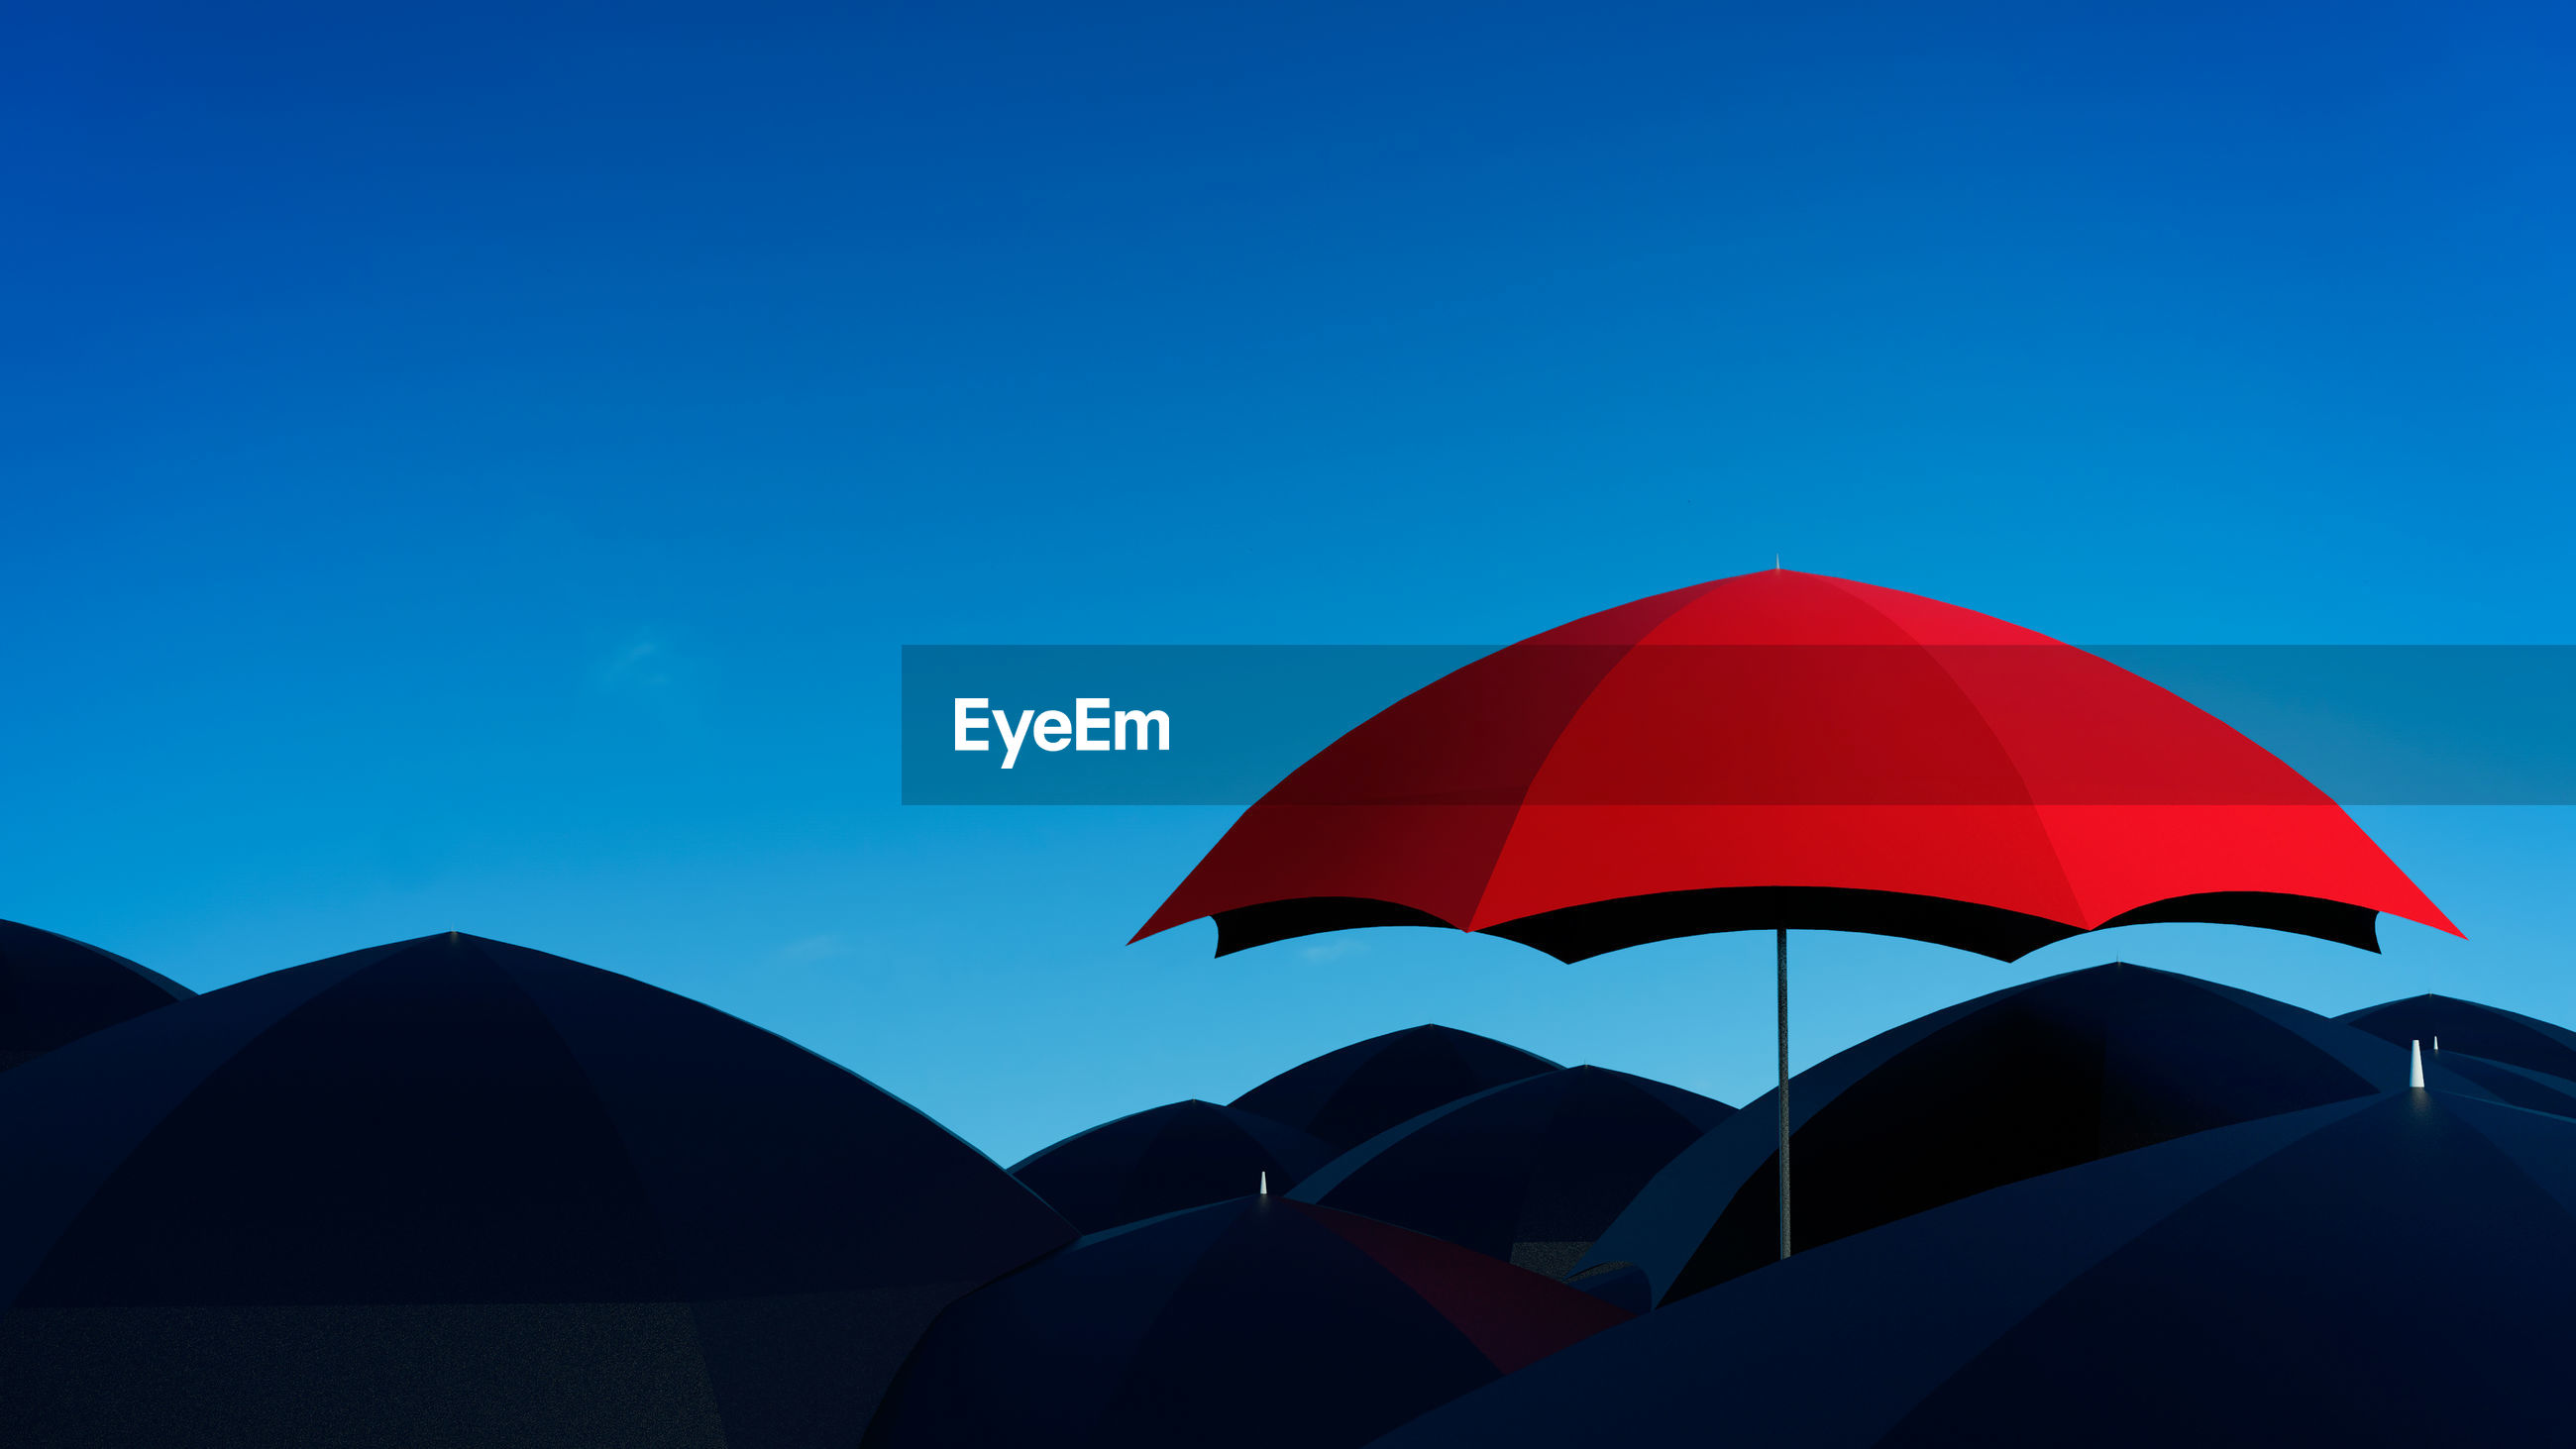 Red umbrella against clear blue sky during dusk